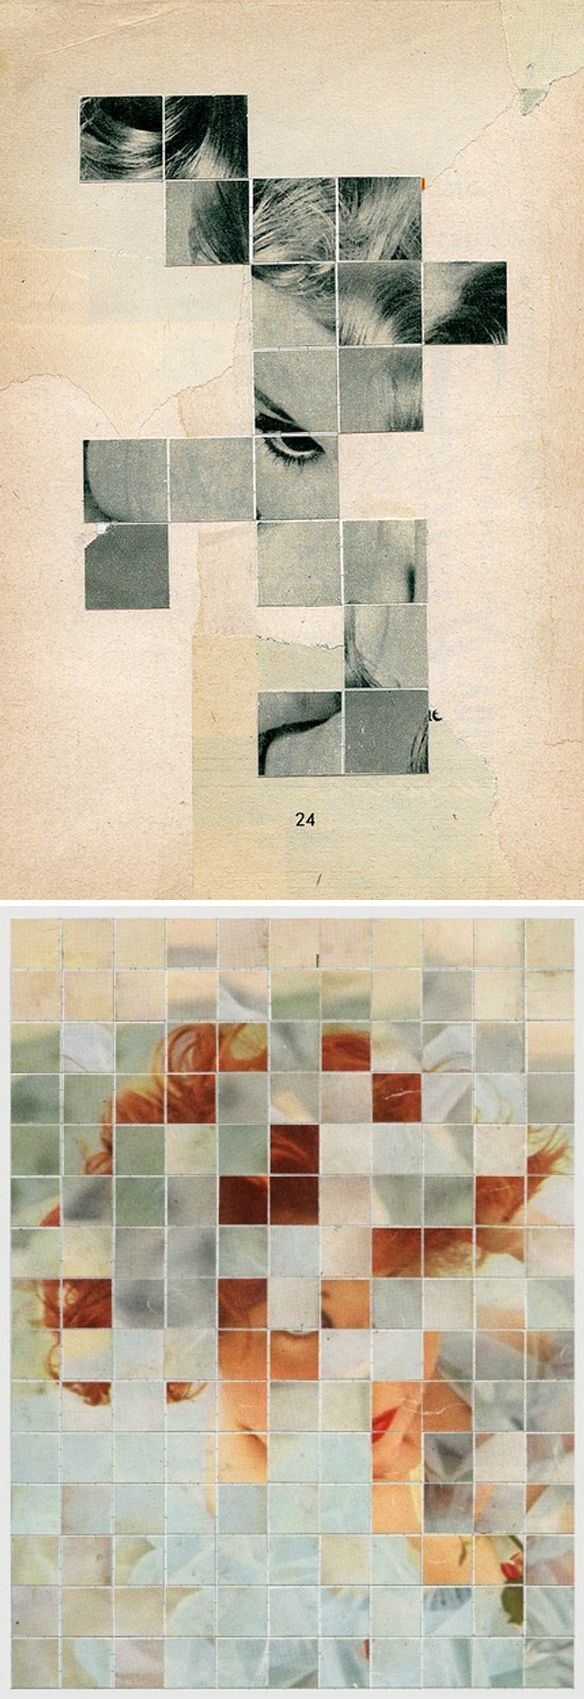 anthony gerace - collage